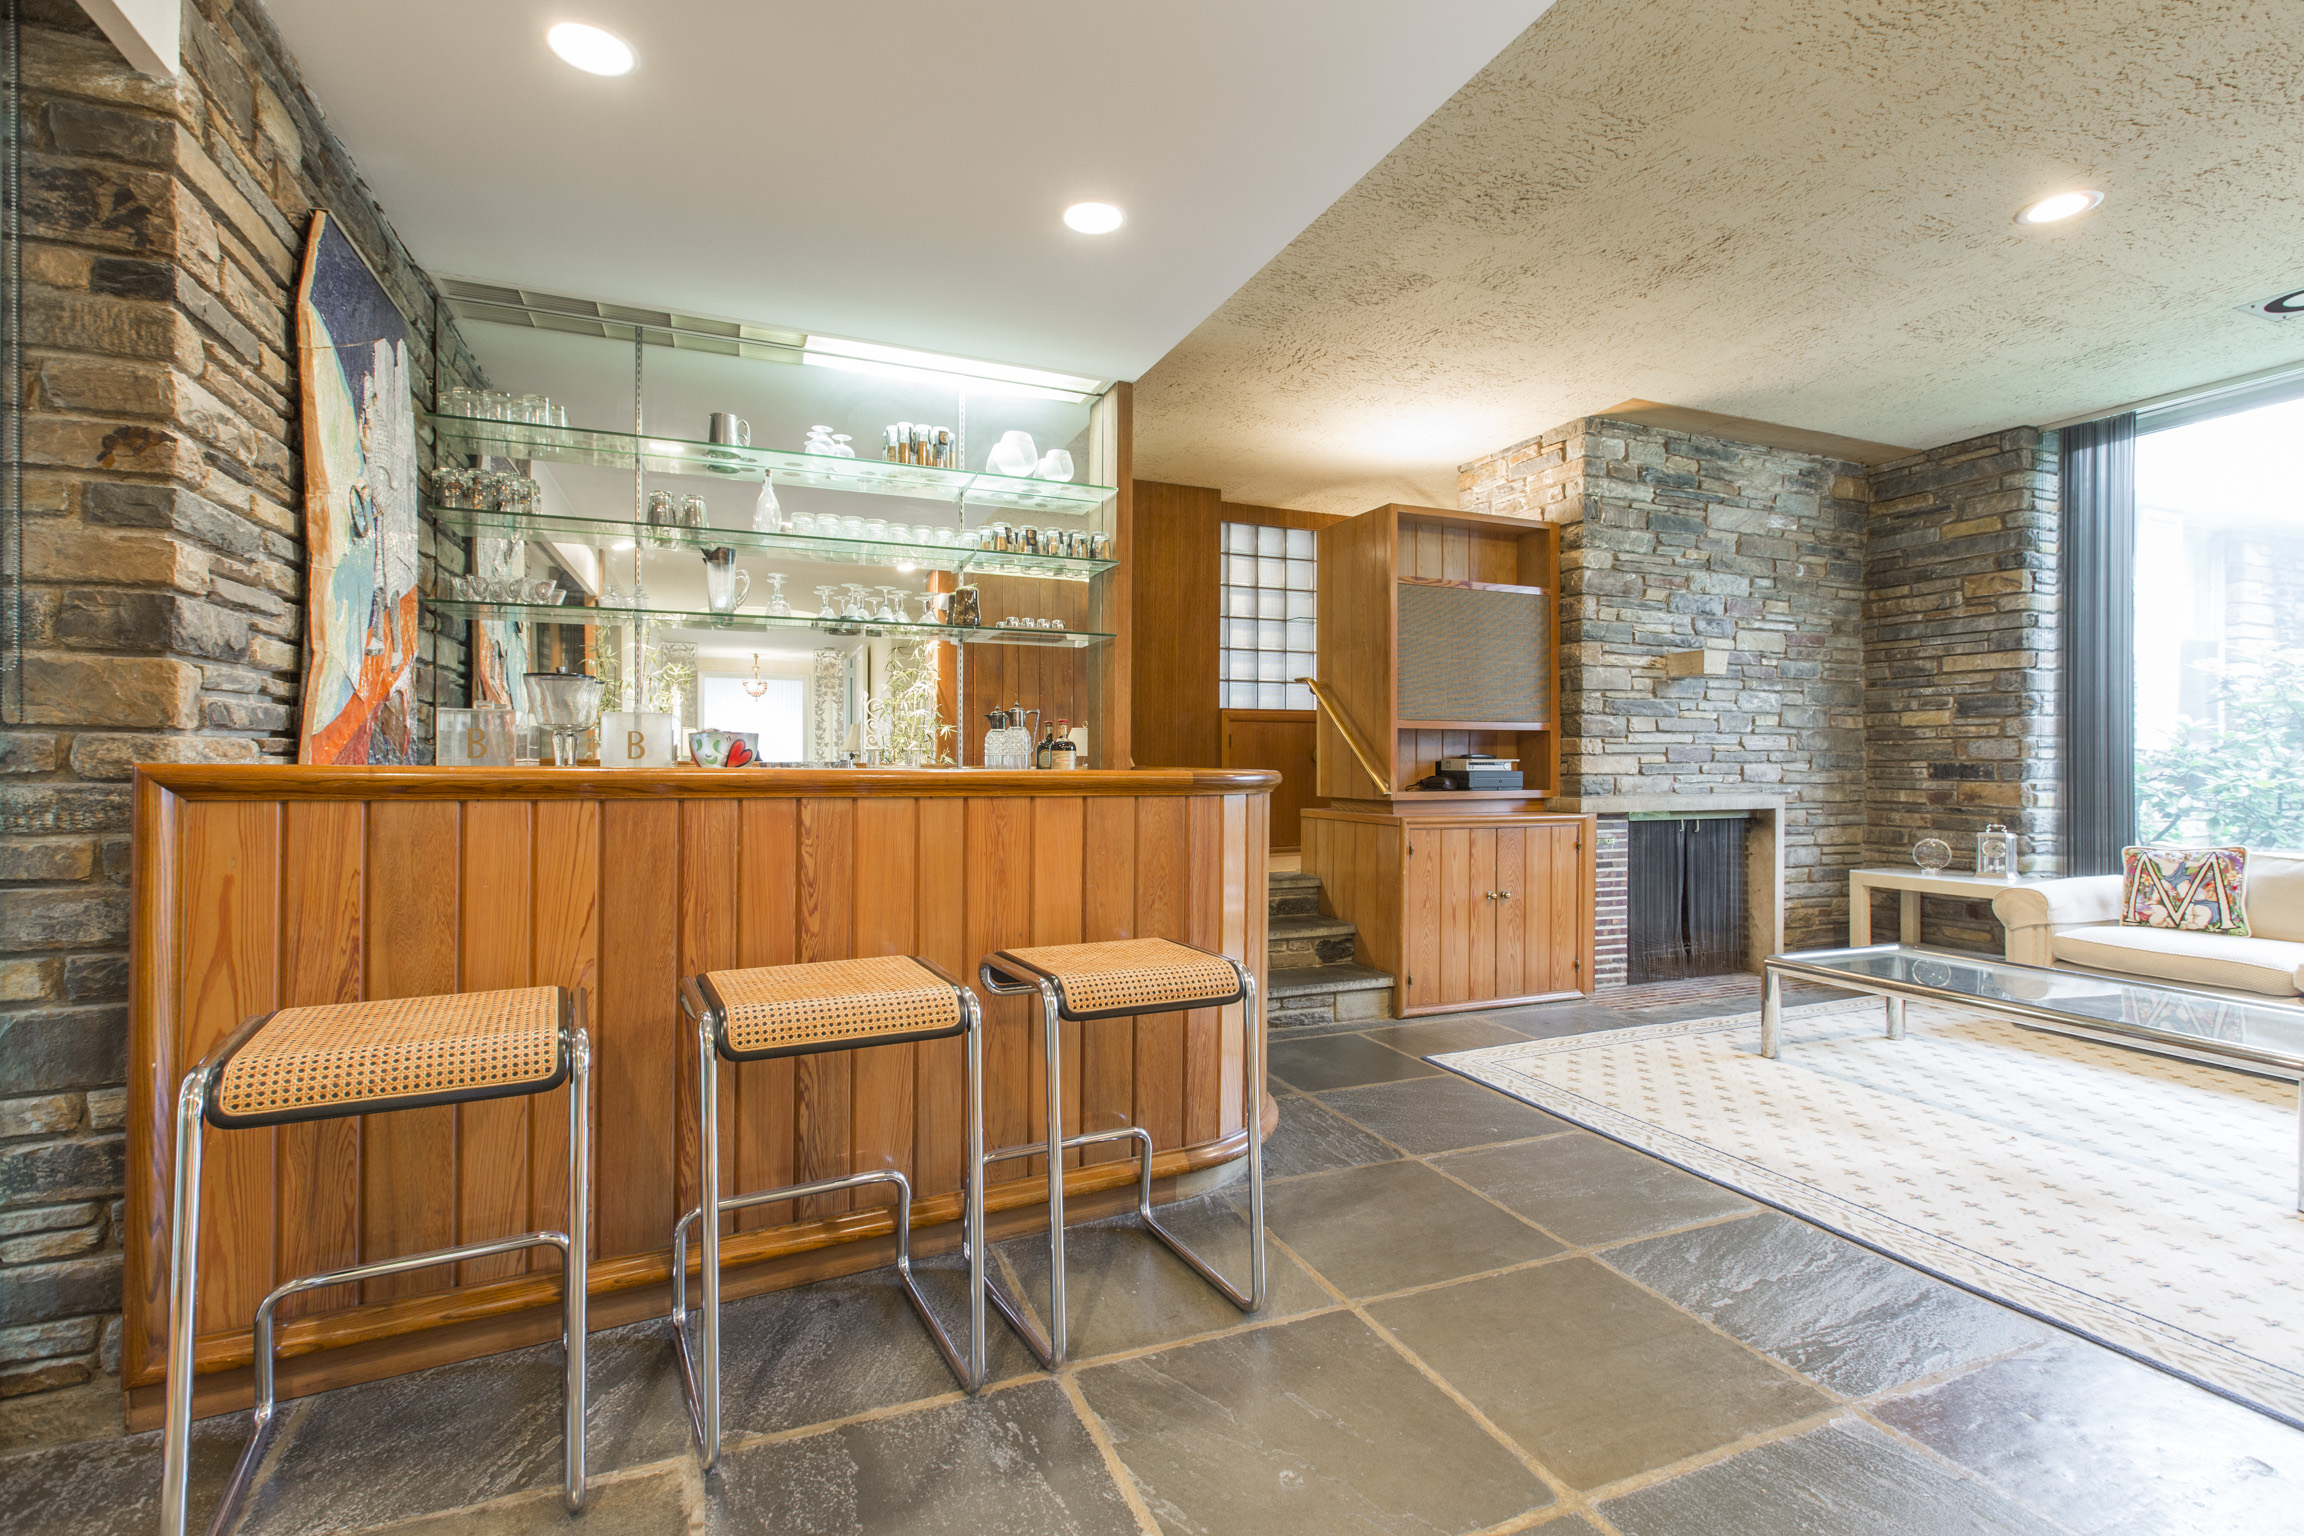 5 midcentury modern homes near philly you can buy right now